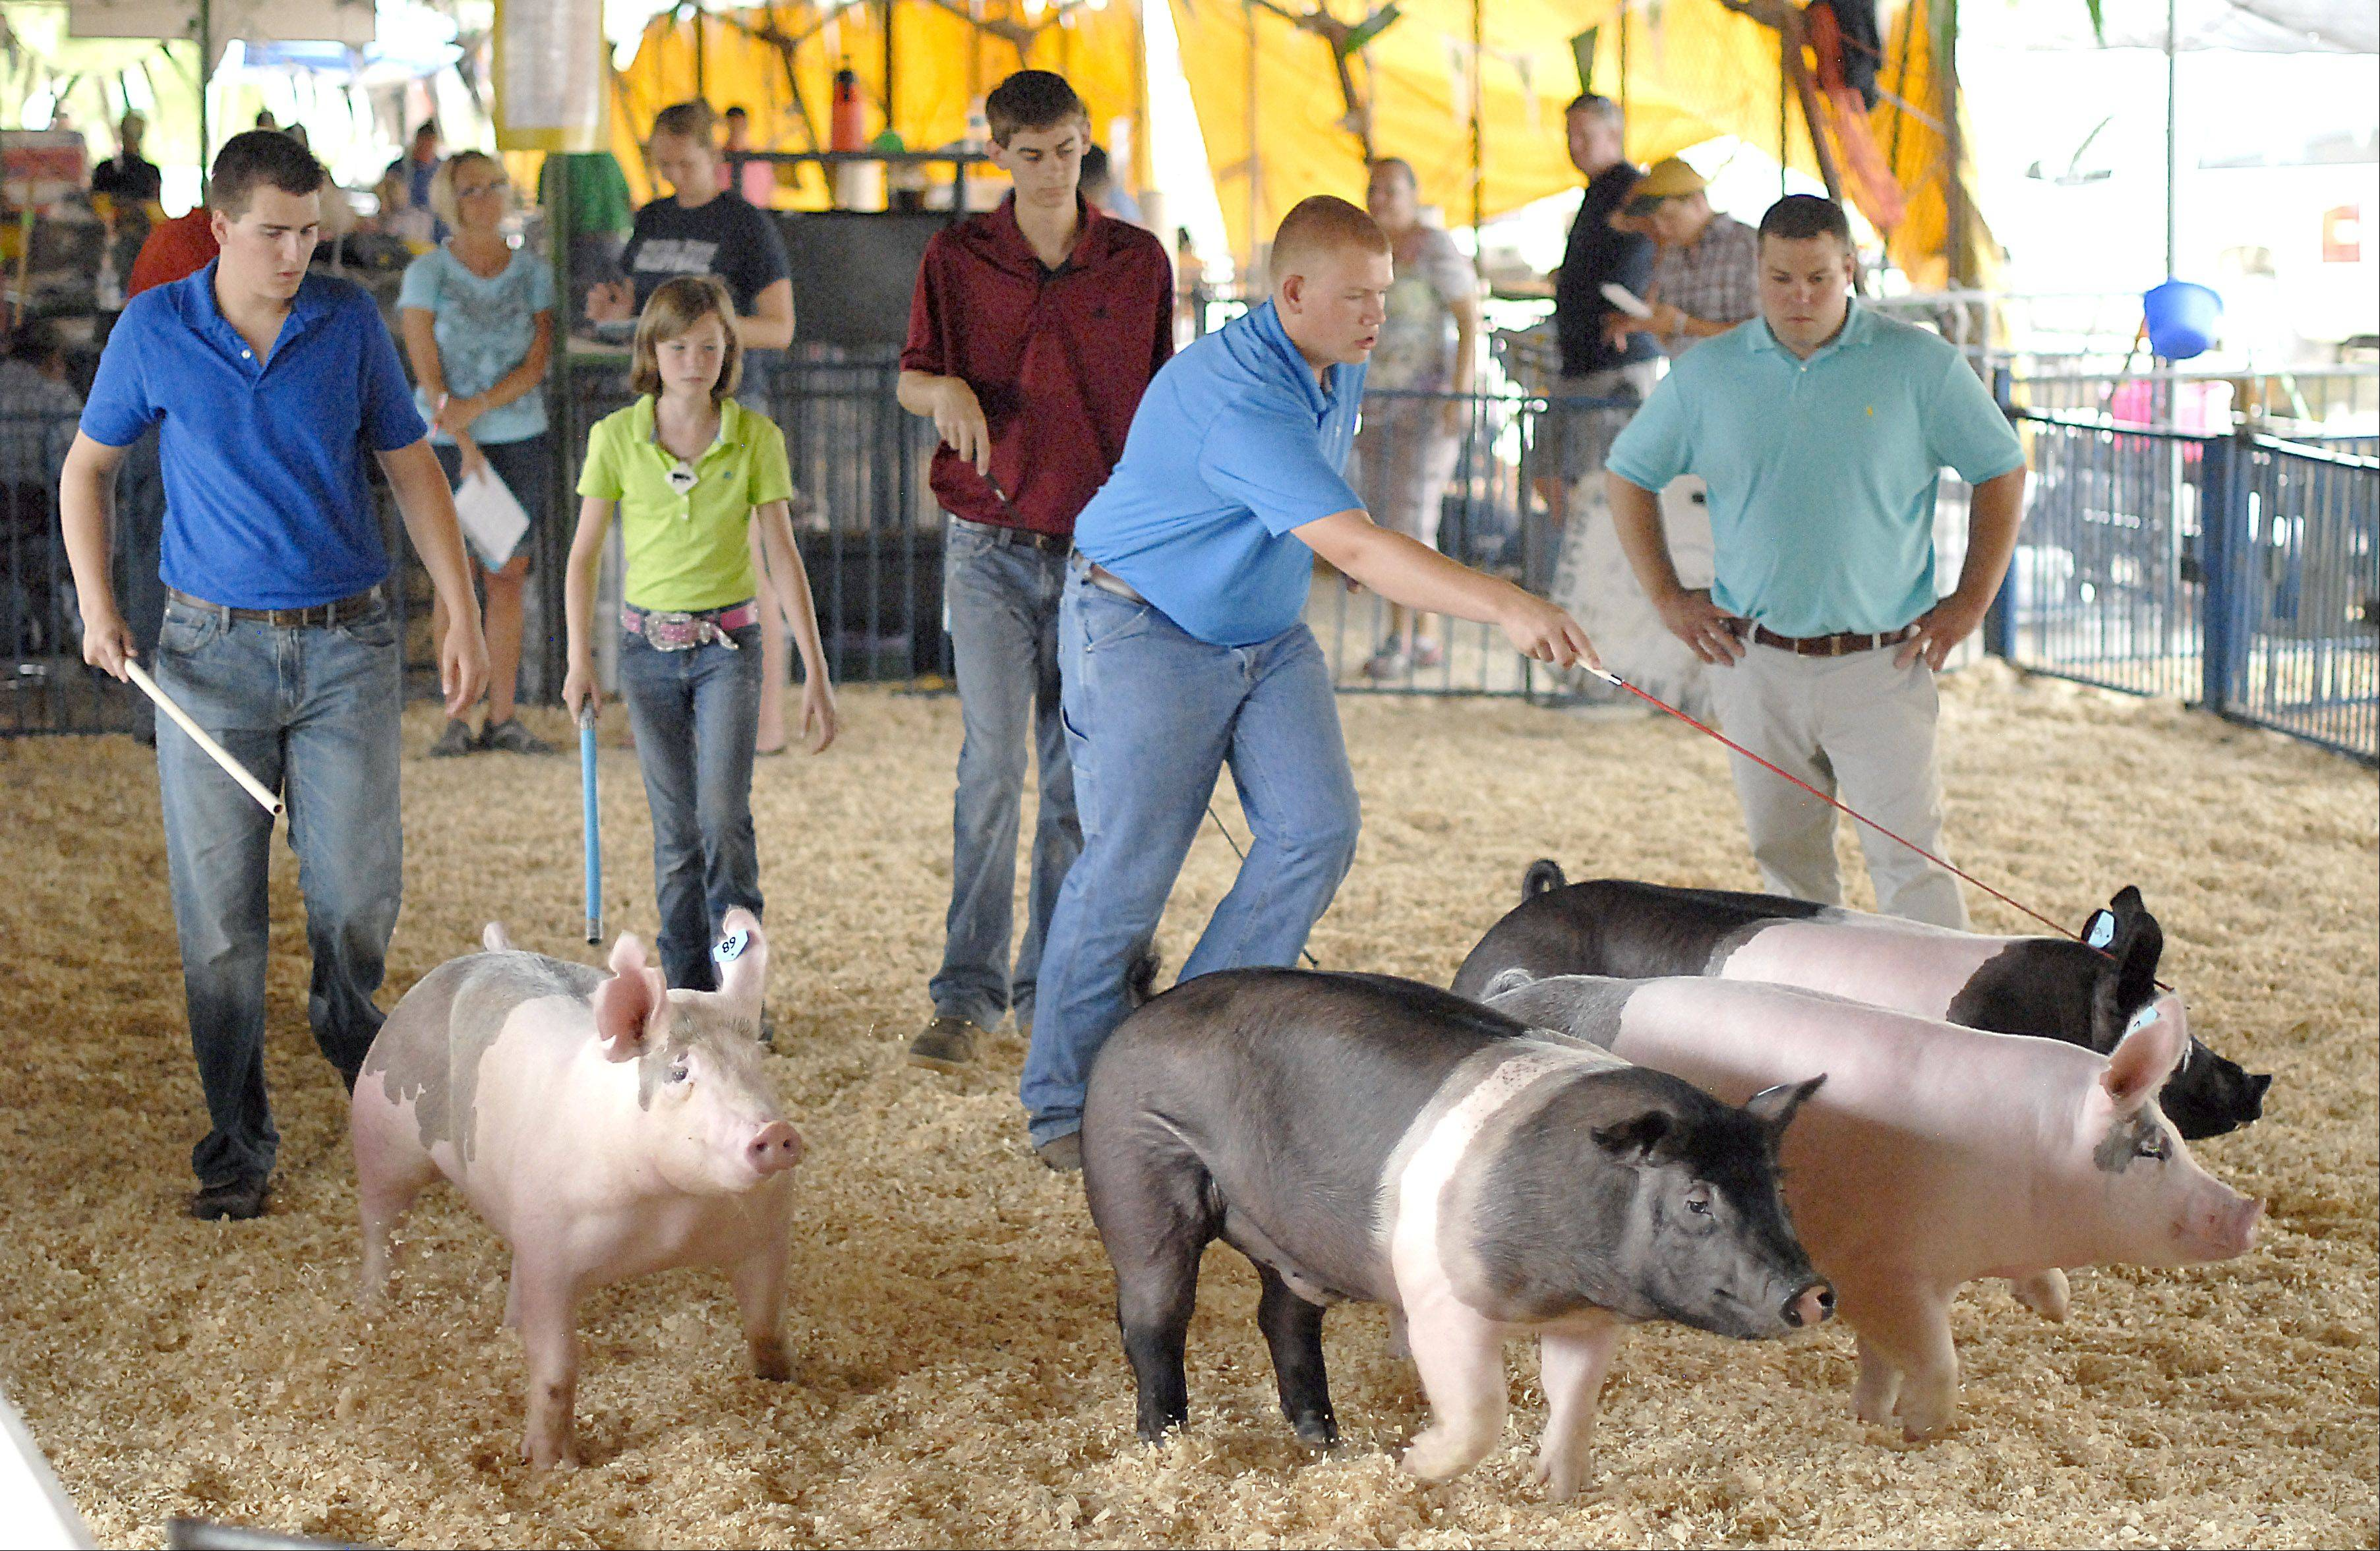 Pigs in the Crossbreed Barrow category in the 255-265 weight class scamper out into the ring for judging during the second day of the Kane County Fair on July 19. Barrow means the pigs have been castrated.